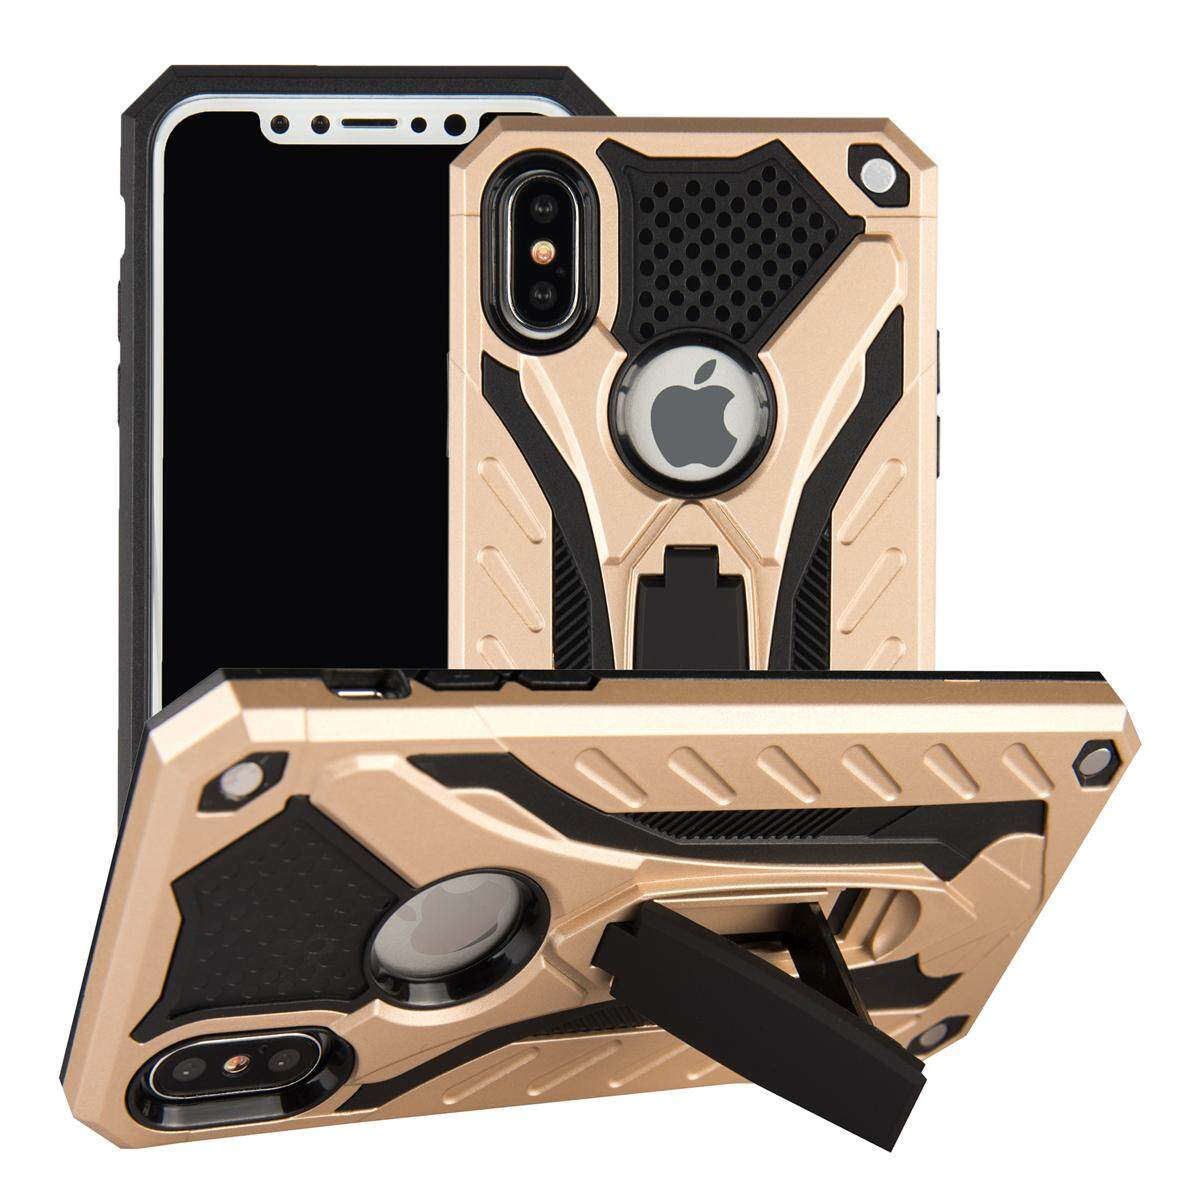 for Apple iPhone X Case [Dots & Stripes] 2in1 Hybrid PC+TPU Armor Back Case Cover, Metal Pad, with Built in Stand Holder, Skidproof, Shock Absorption, Mix & Match